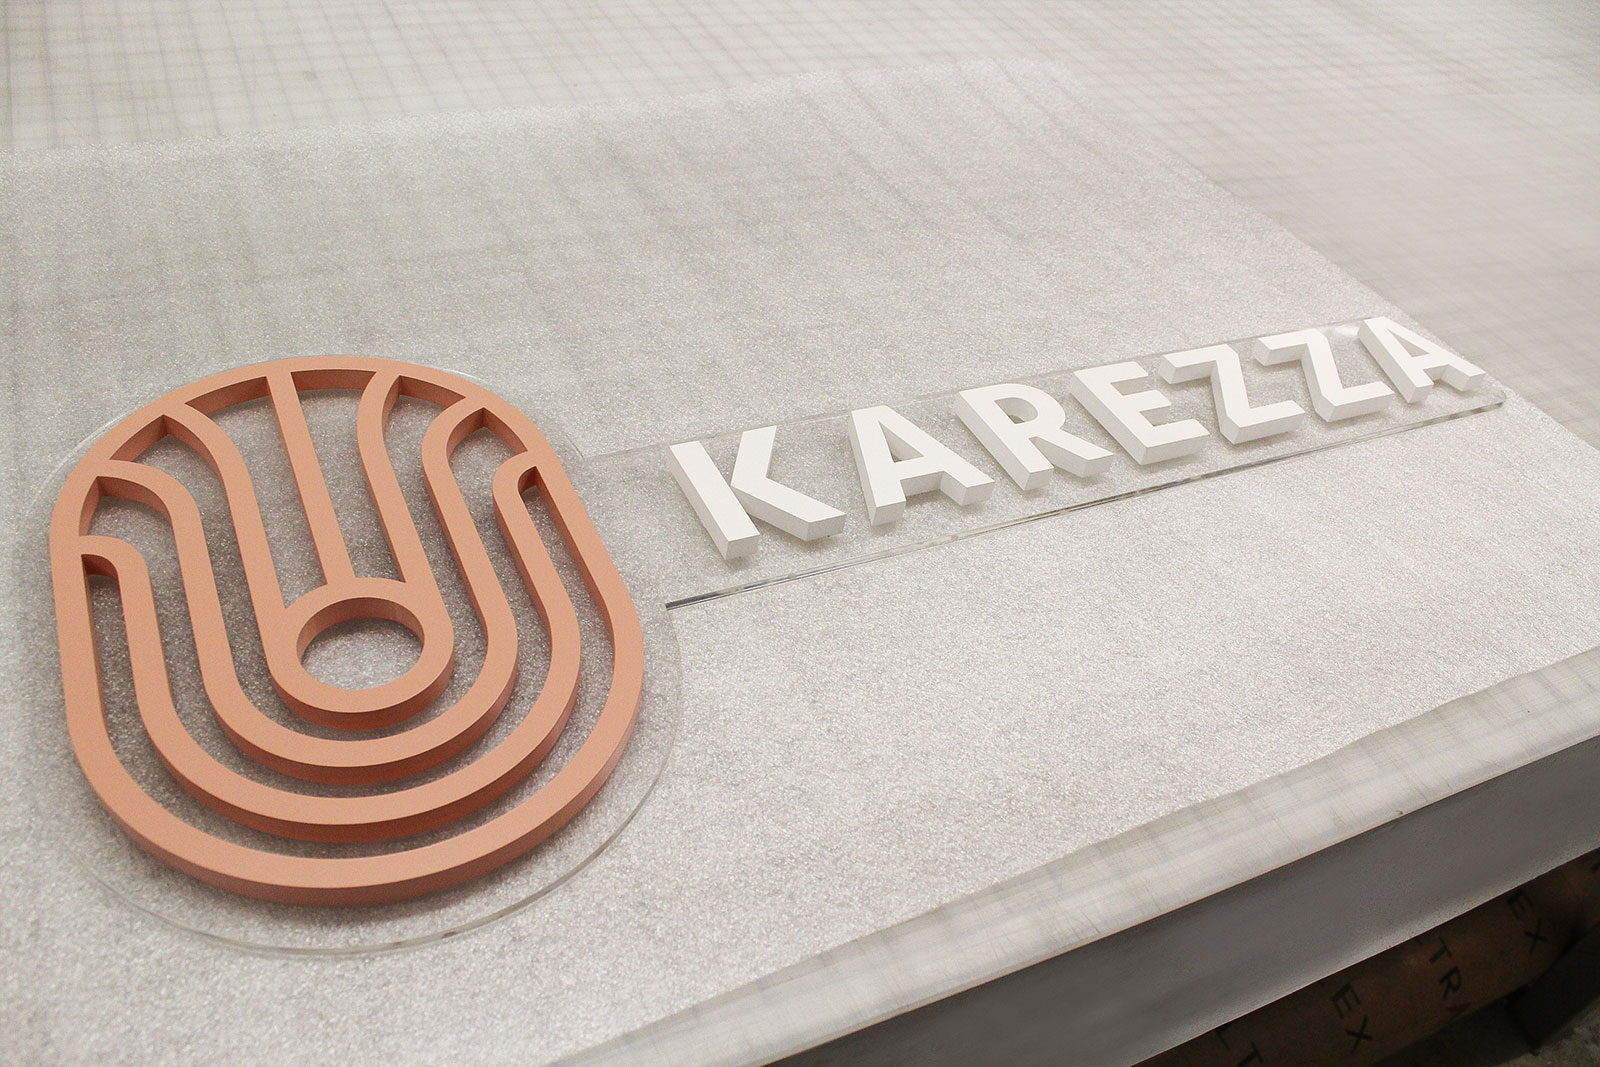 Karezza giant 3d letters and logo sign painted with Matthews Intermix System and made of acrylic for reception branding